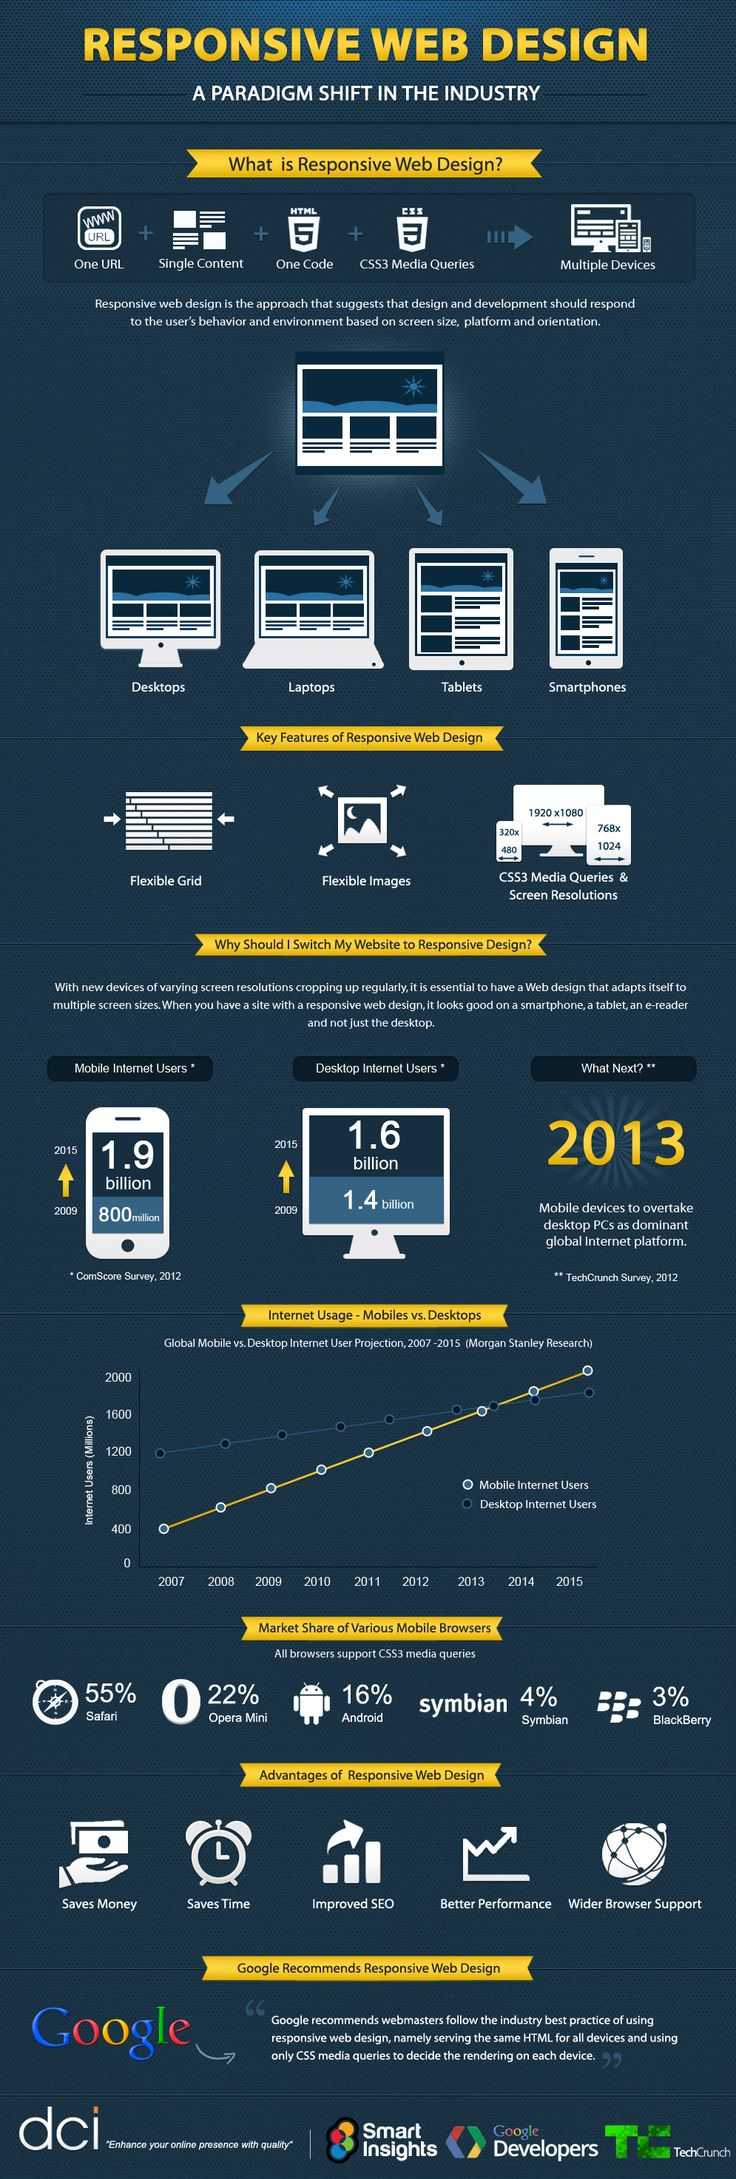 Responsive Web Design  Dot Com Infoway (DCI) has recently unveiled its latest infographic which puts the spotlight on one of the most recent and advanced techniques